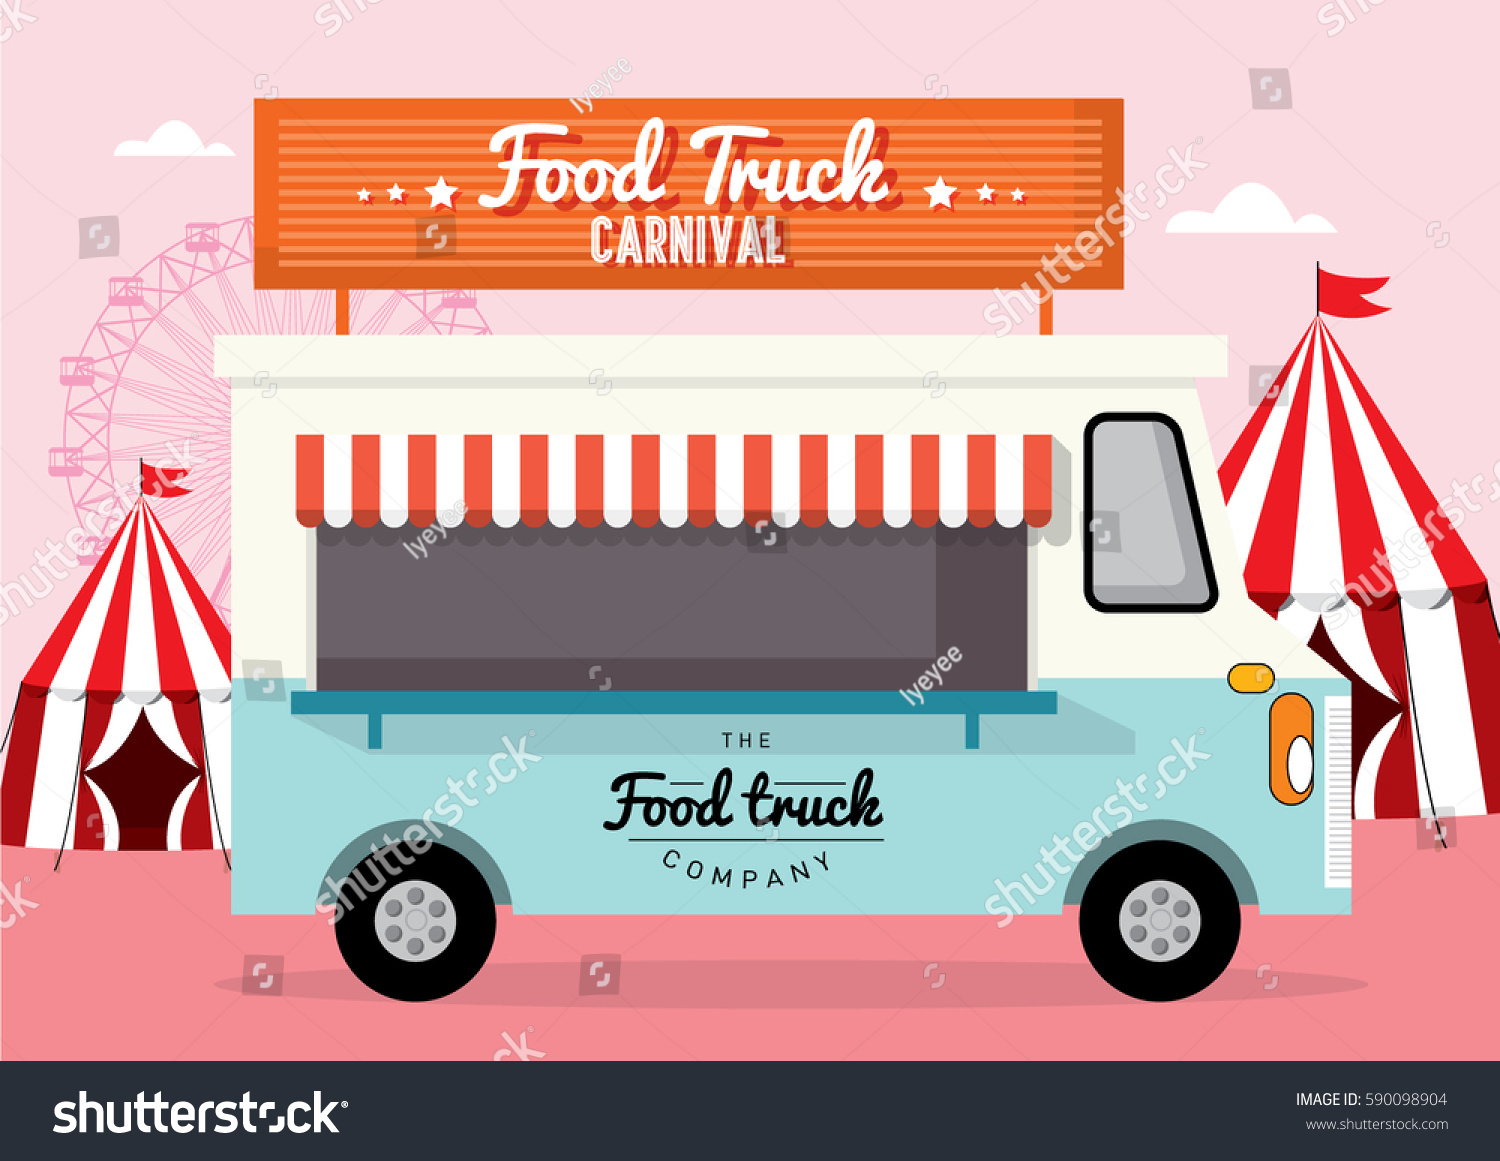 Food truck carnival template vectorillustration stock vector food truck carnival template vectorillustration pronofoot35fo Images